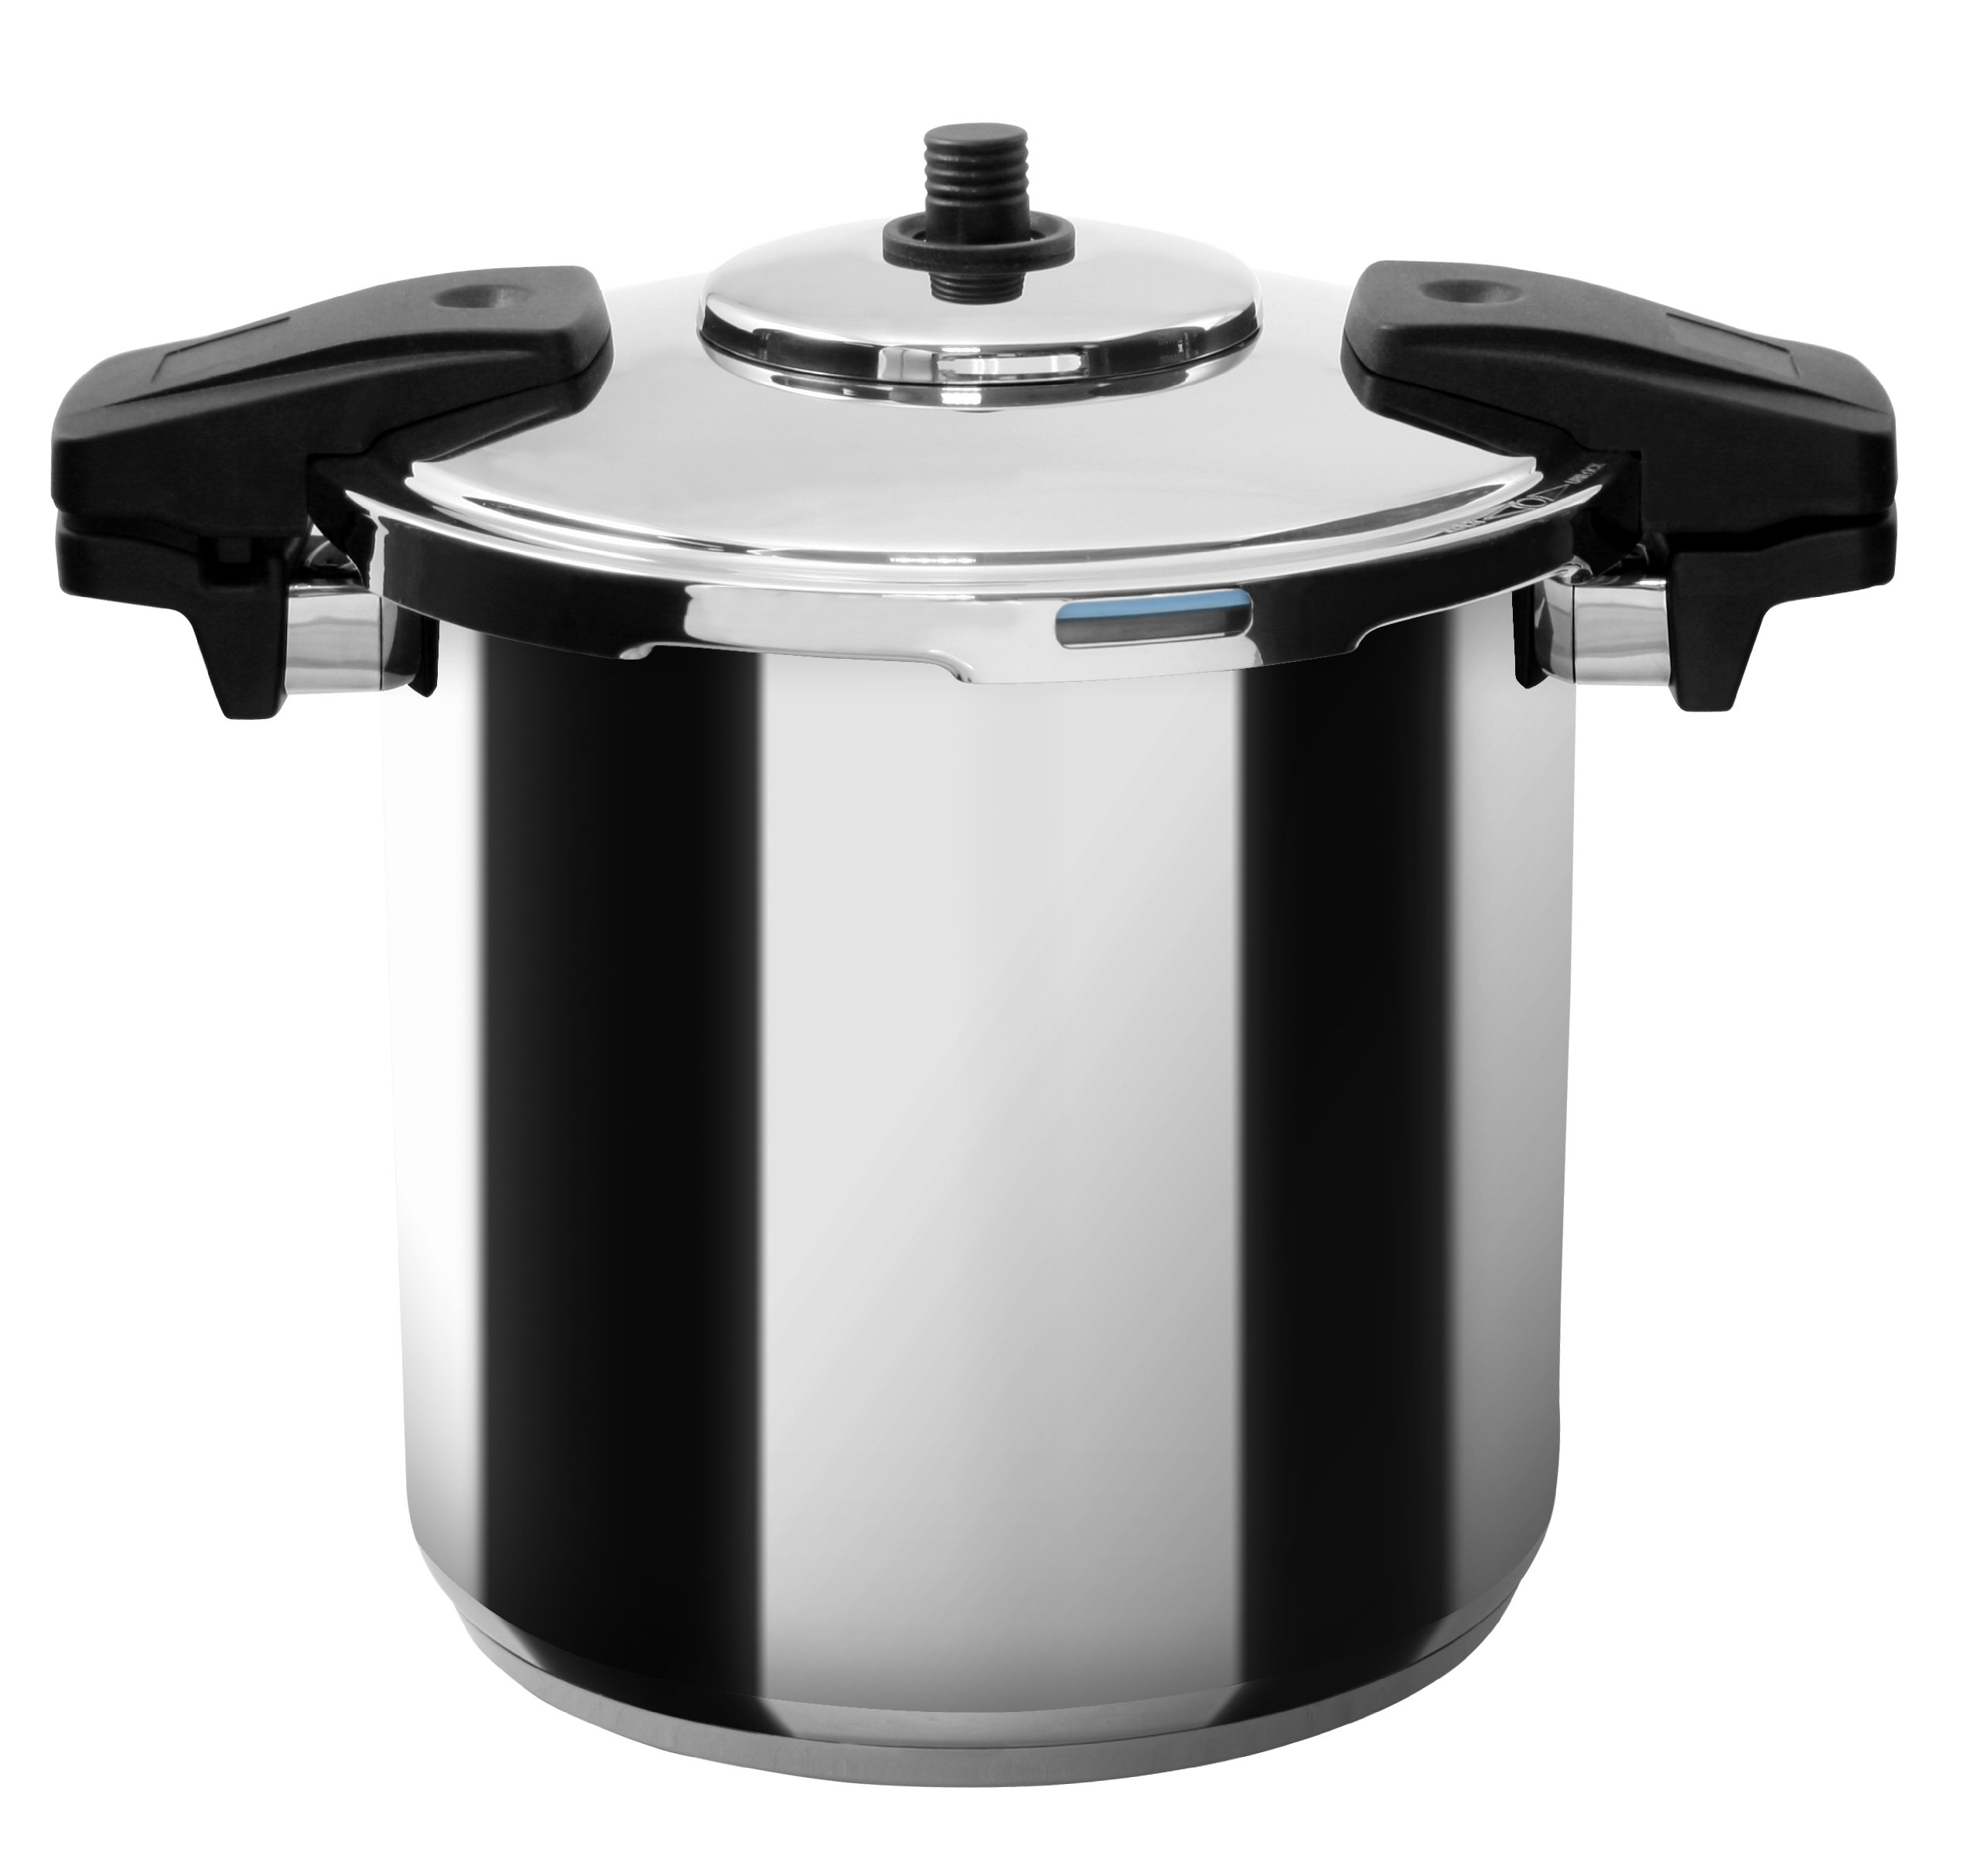 MIU France Stainless Steel Professional 8-Qt. Pressure Cooker, Silver